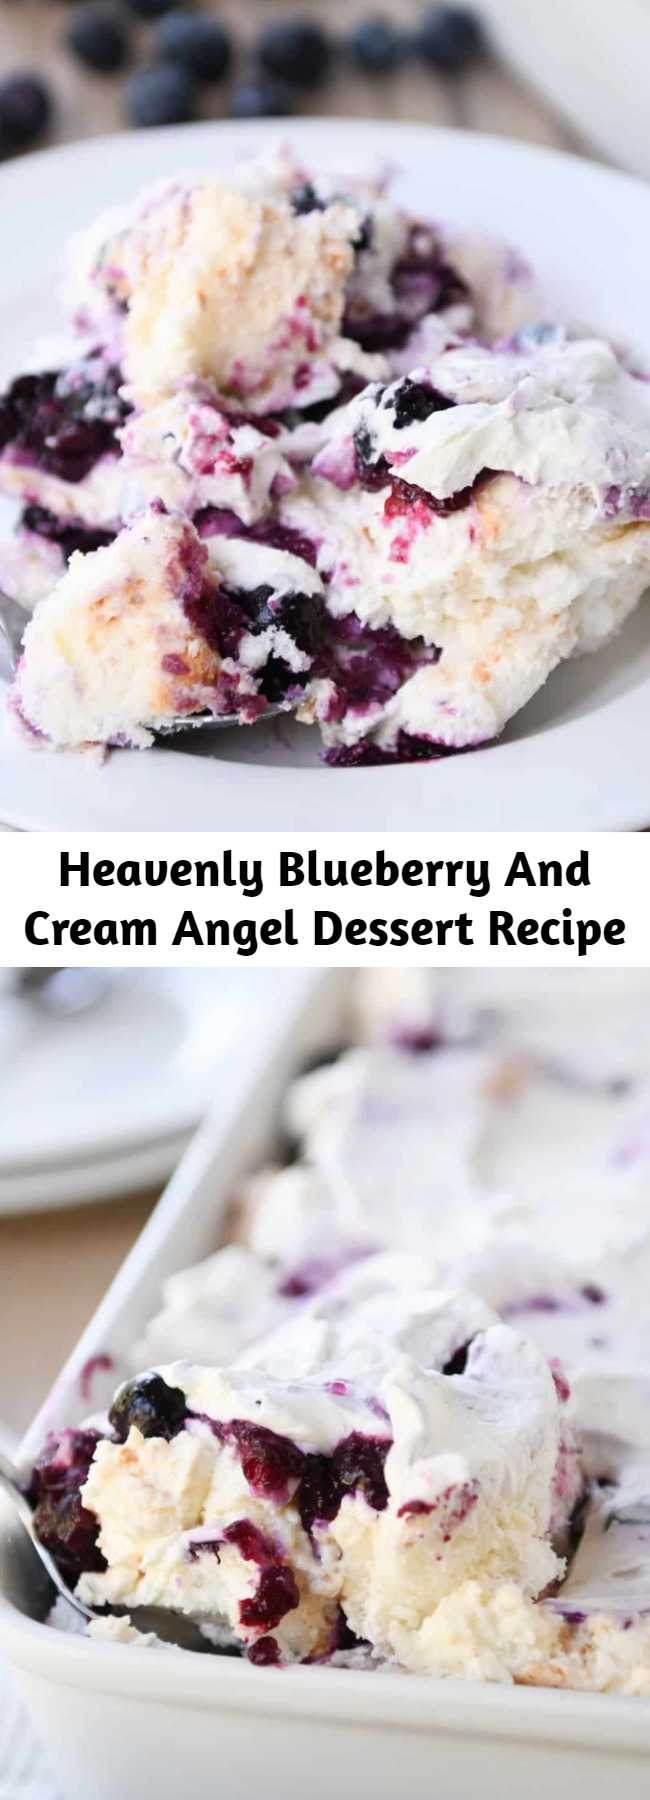 Heavenly Blueberry And Cream Angel Dessert Recipe - This heavenly blueberry angel food cake dessert is so light and delicious! So simple to prepare, it is the perfect ending to any meal. It's hard to describe how heavenly this dessert really is. It makes the perfect ending to any meal – everyone always asks for the recipe!